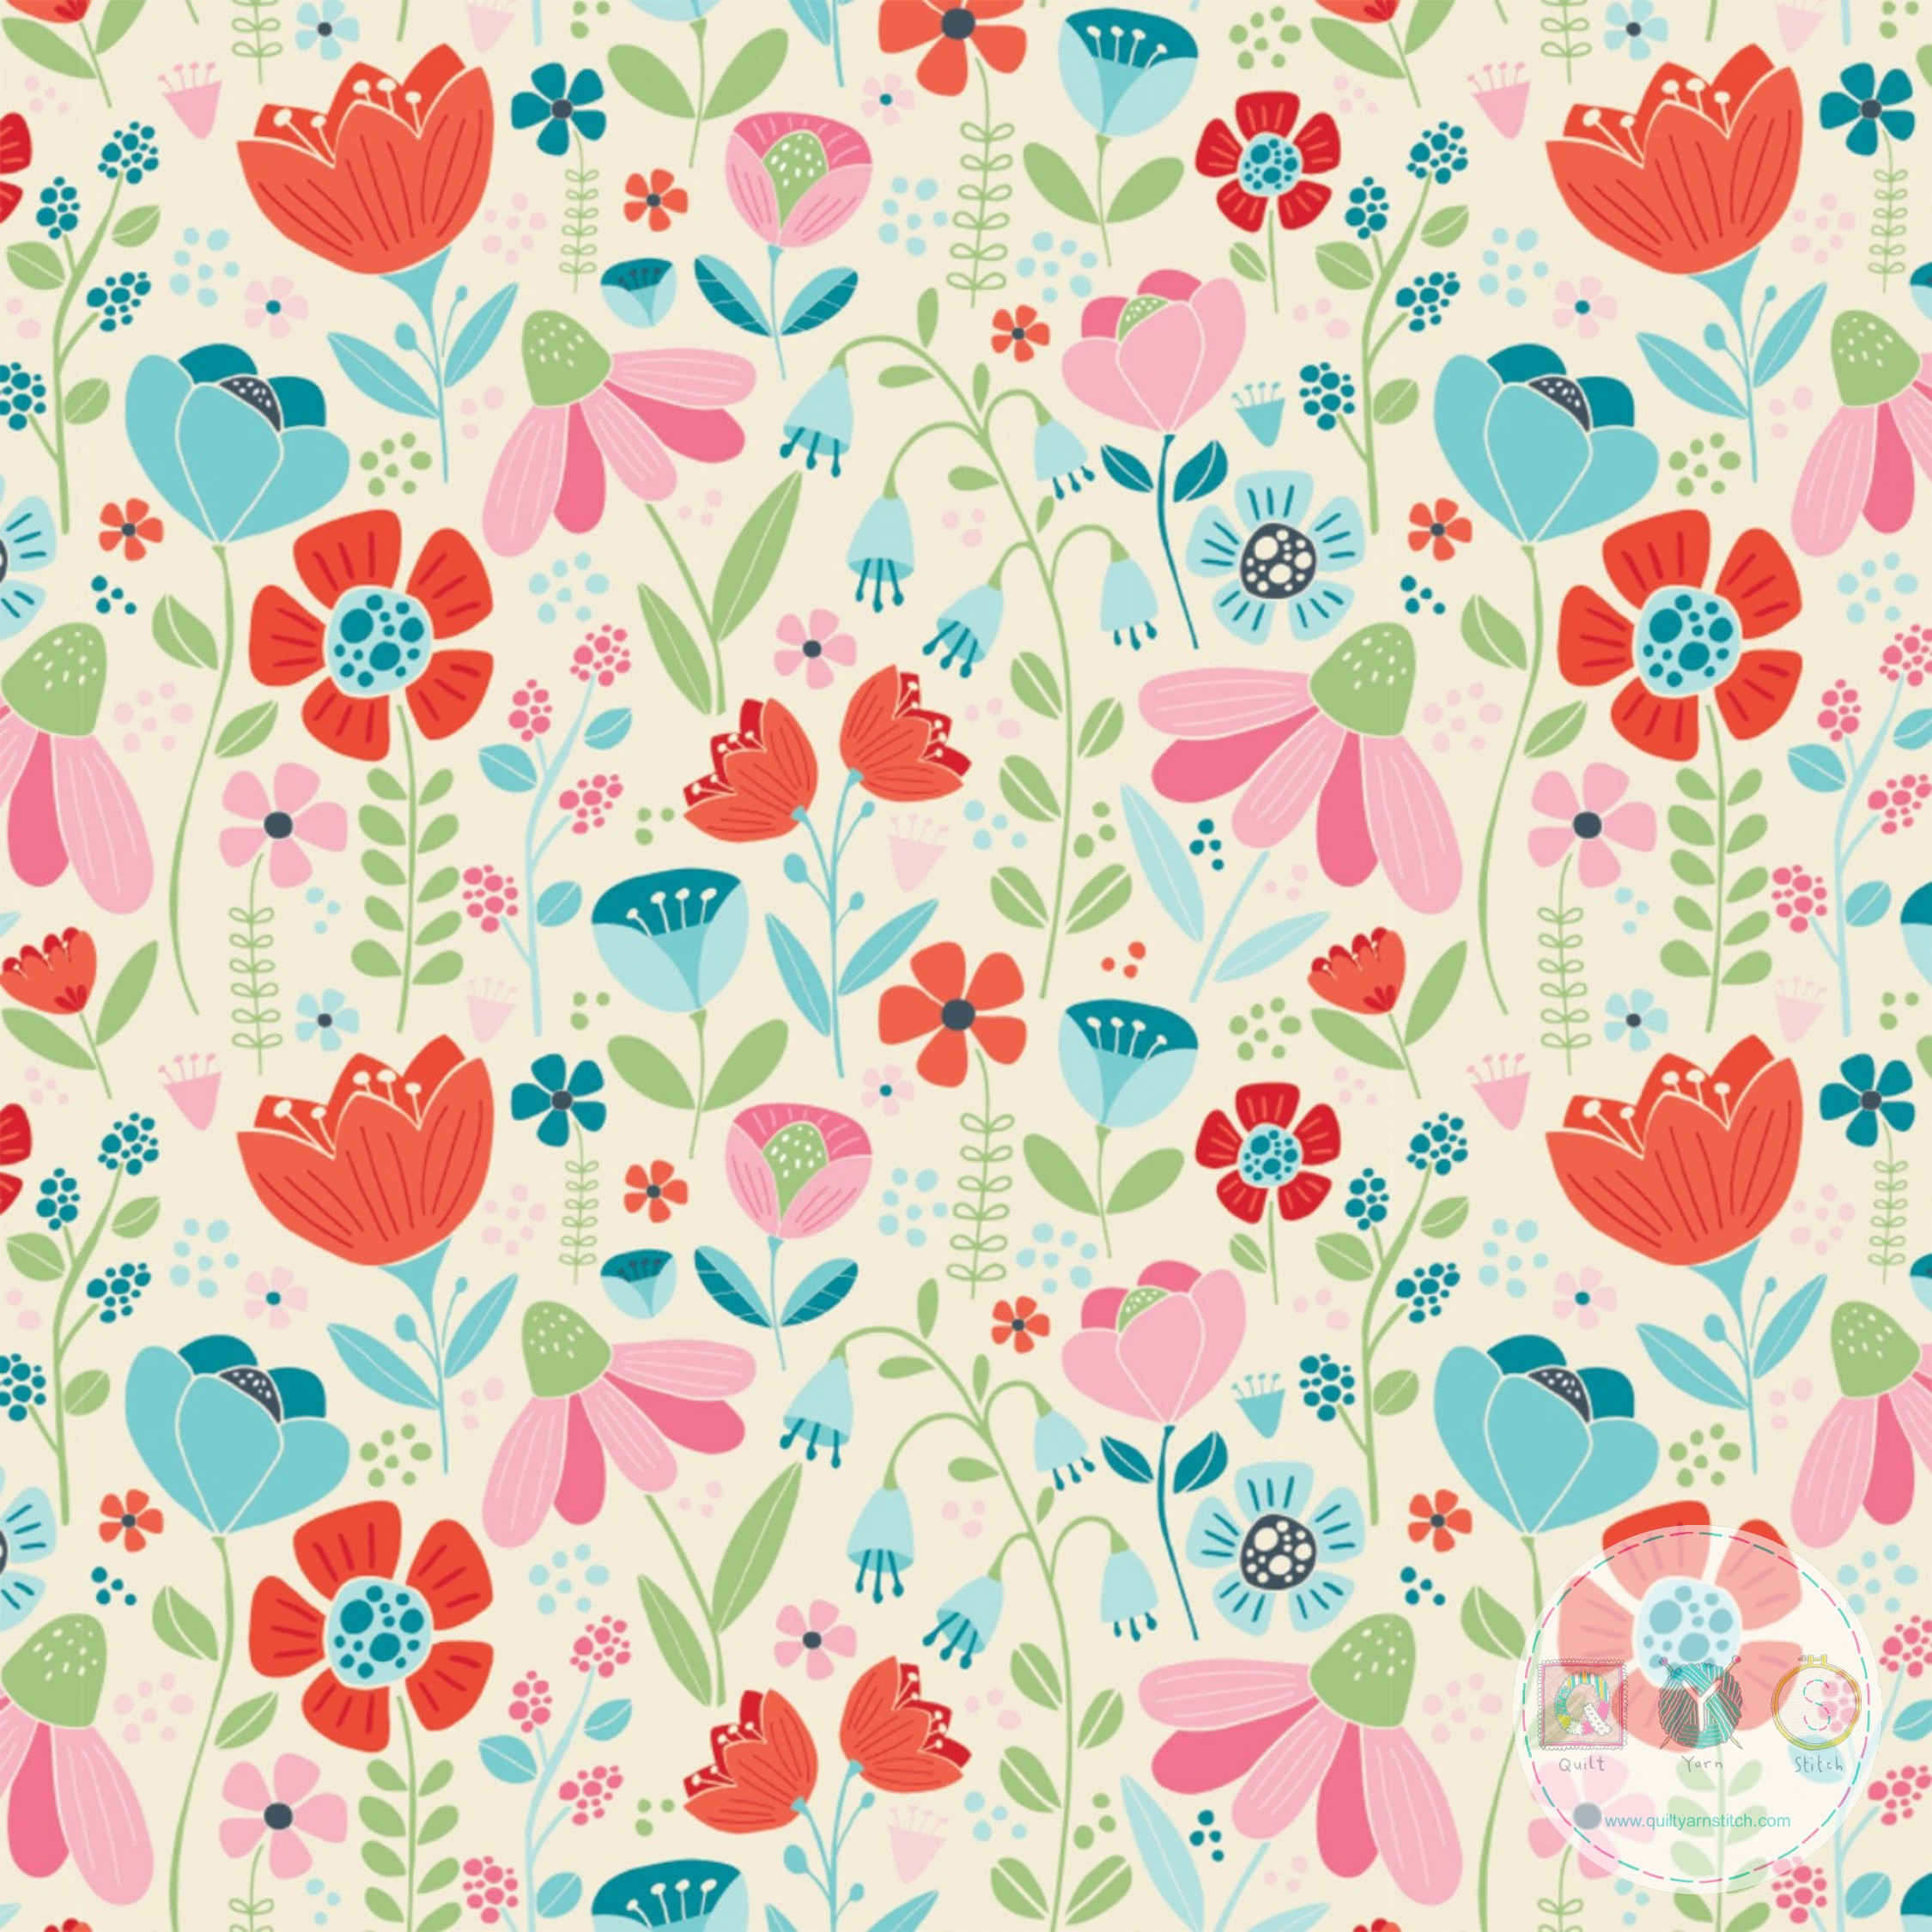 Camelot Fabrics - Enchanted Blooms - Enchanted Forest - Patchwork & Quilting